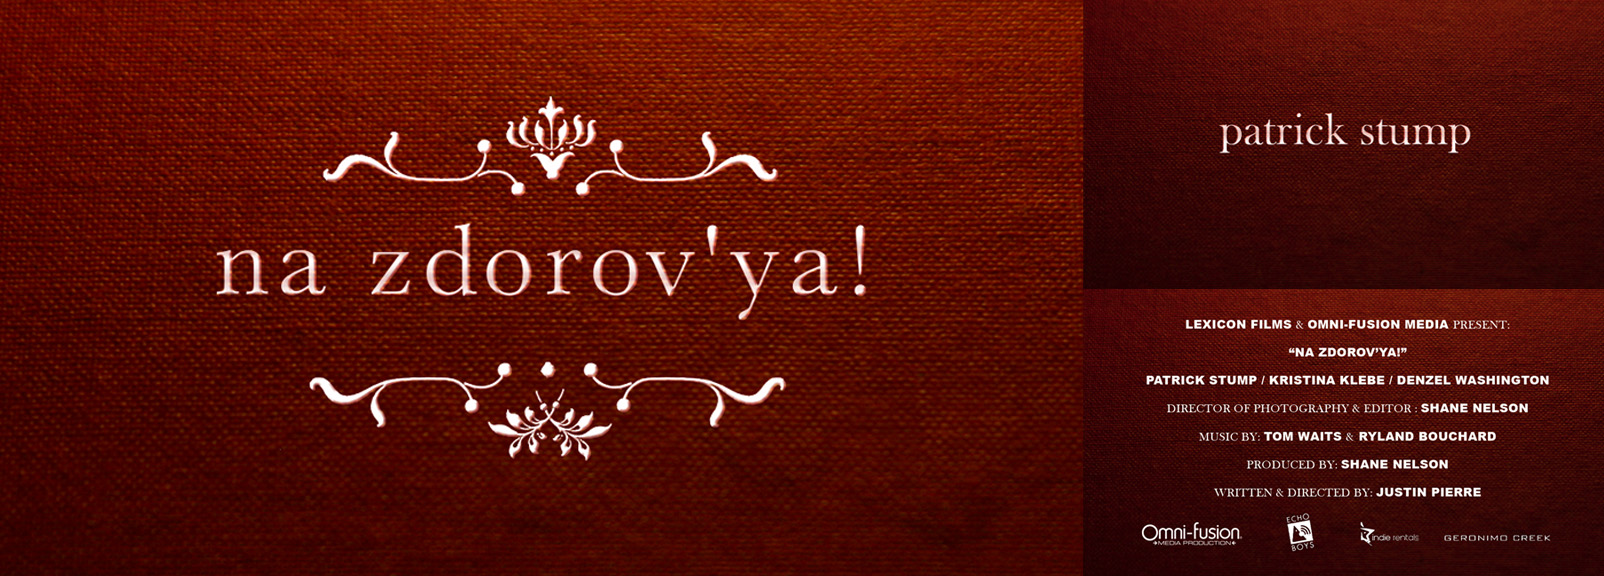 Title design for the short film Na Zdrov'ya! starring Fall Out Boy lead singerPatrick Stump